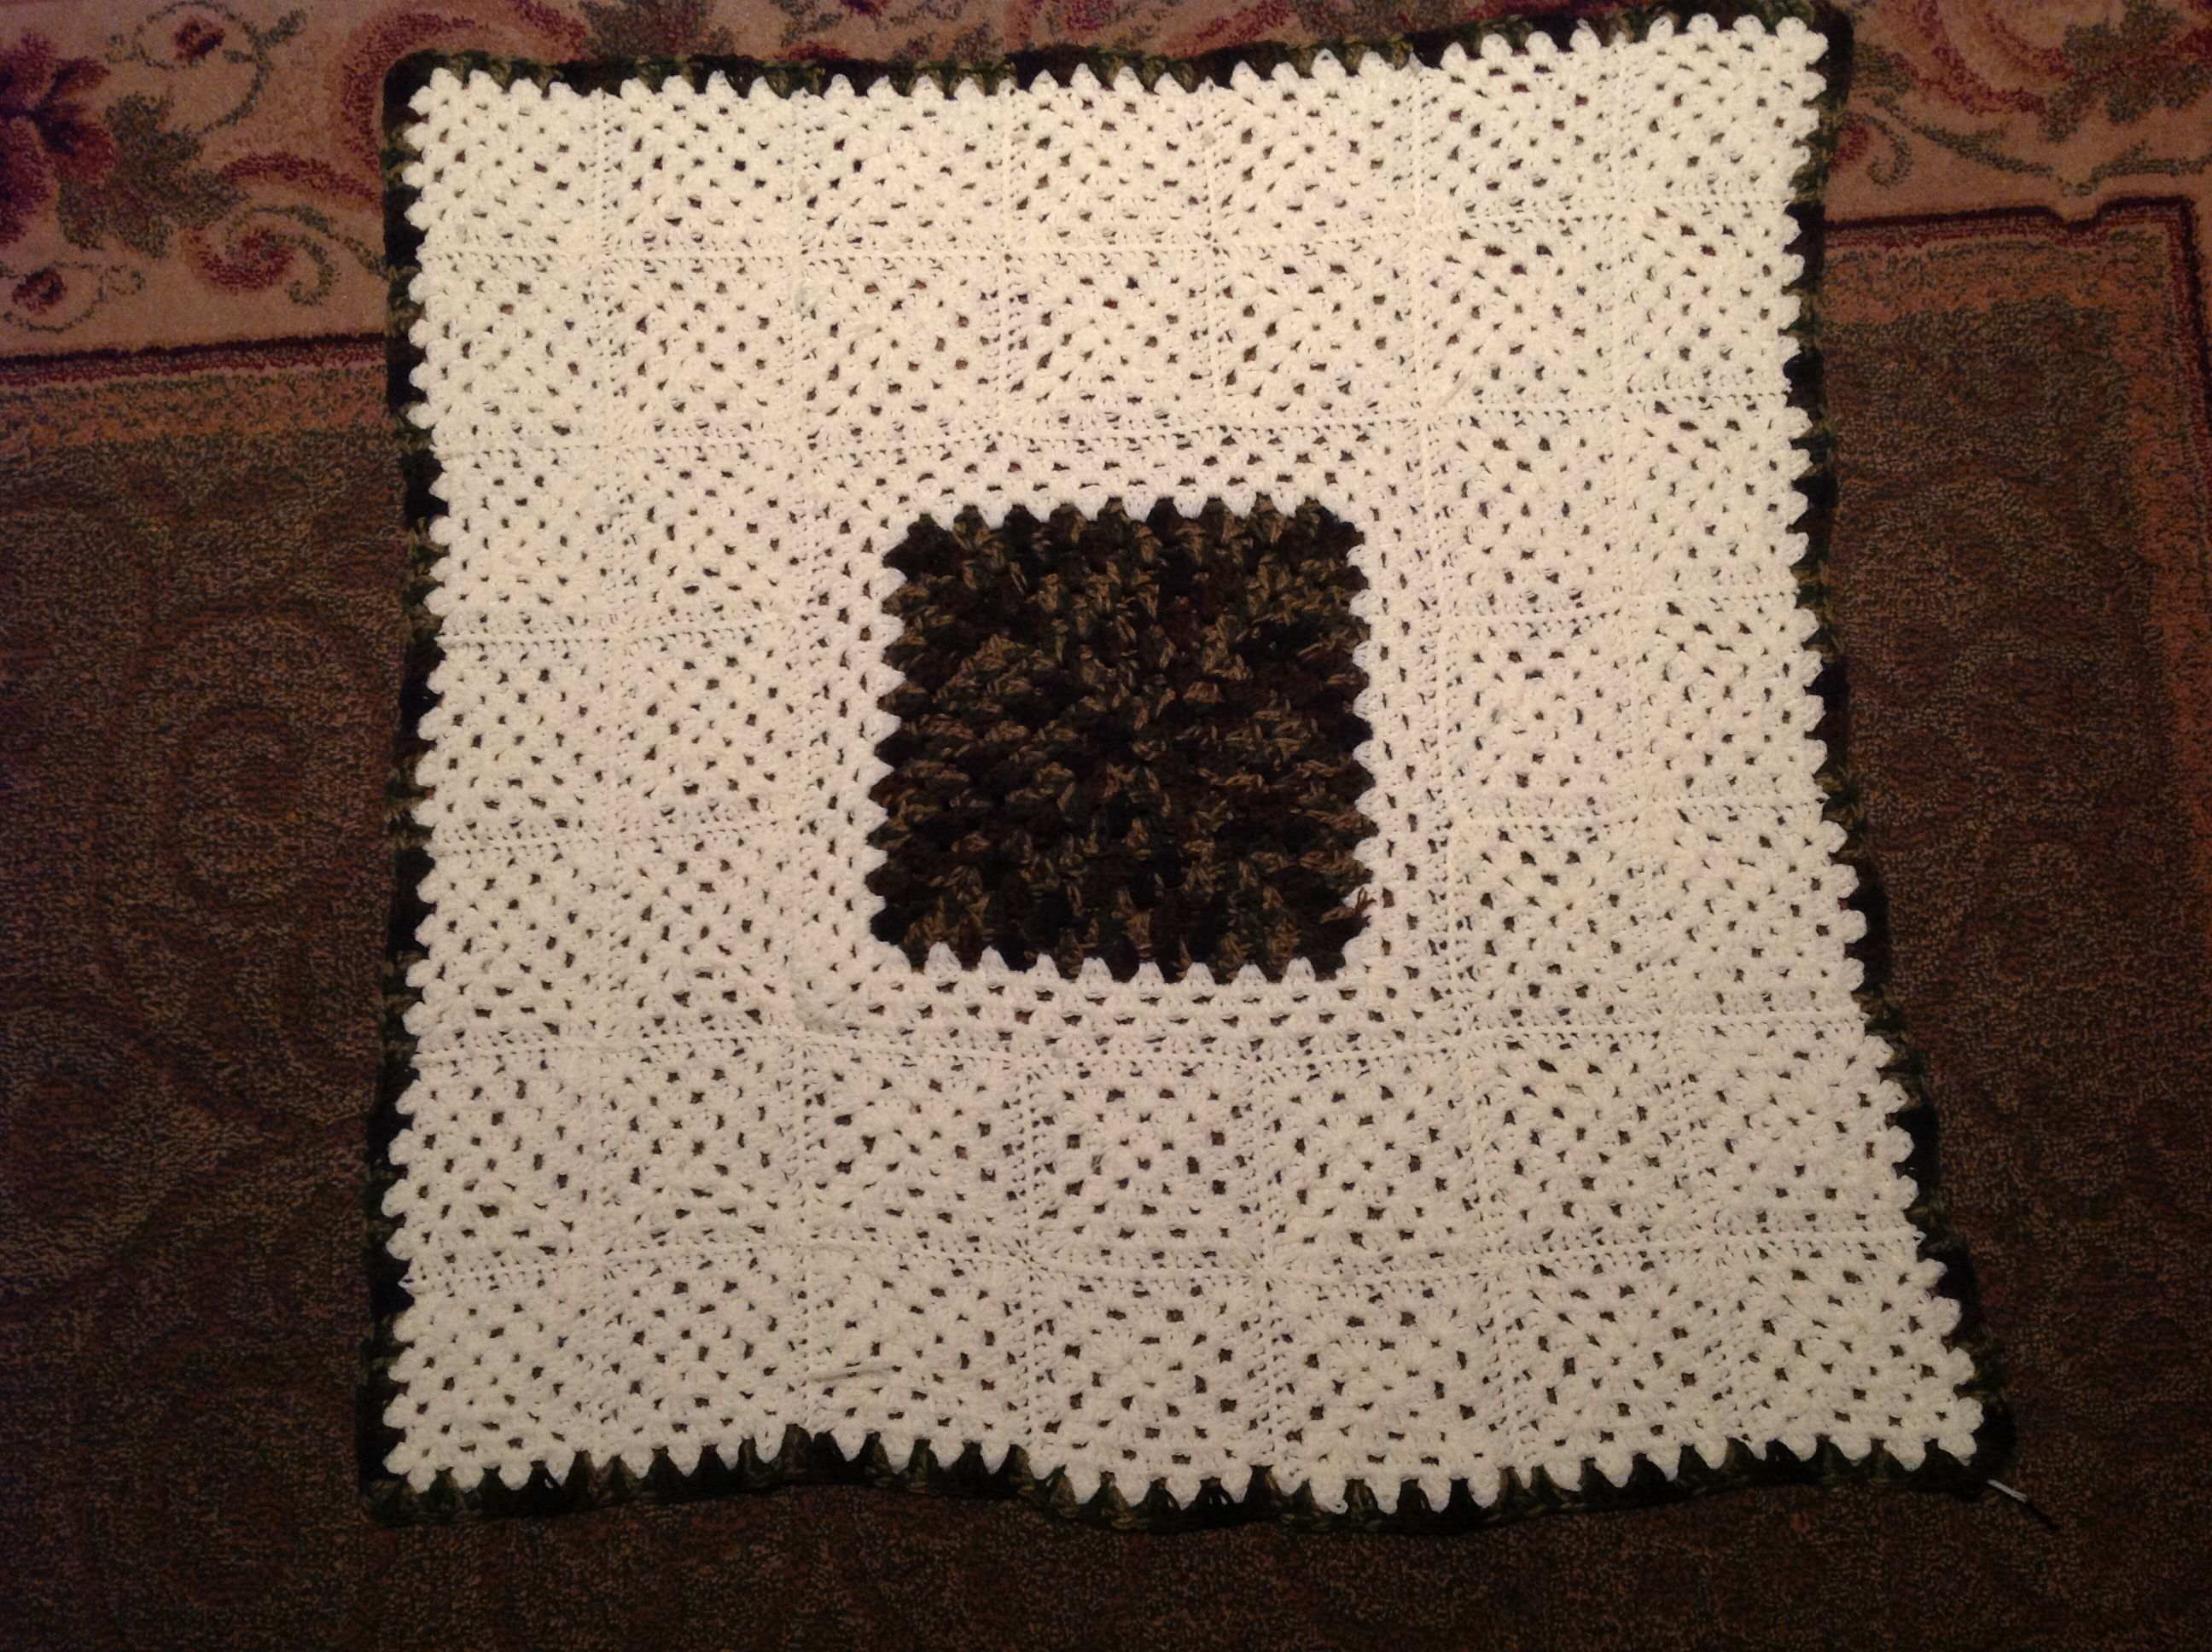 My 1st baby blanket using granny squares